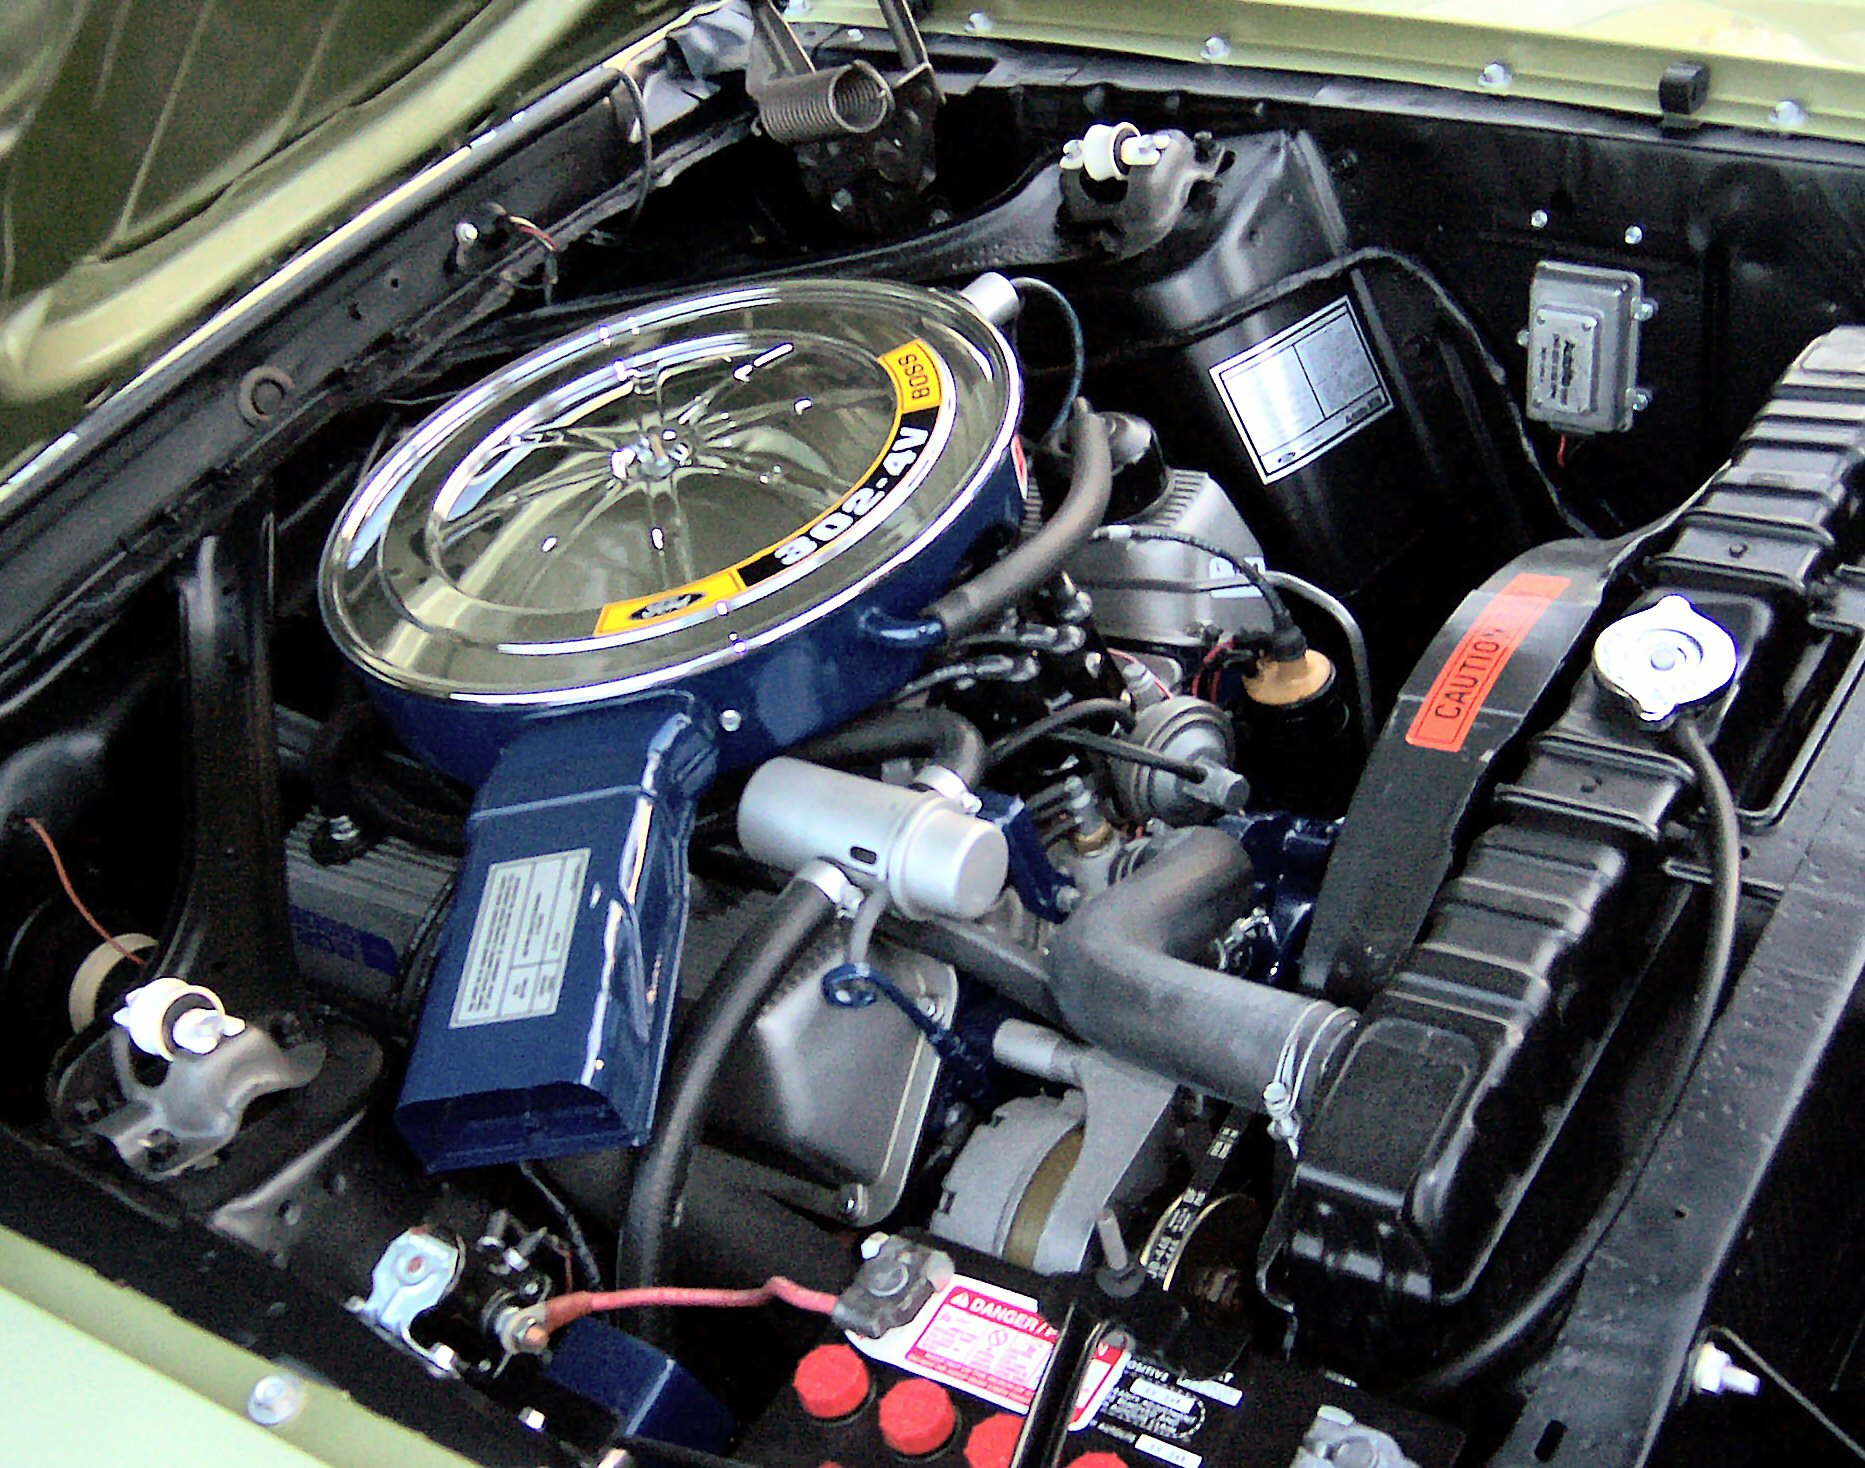 specs ford 289 engine diagram ford boss 302 engine wikipedia  ford boss 302 engine wikipedia